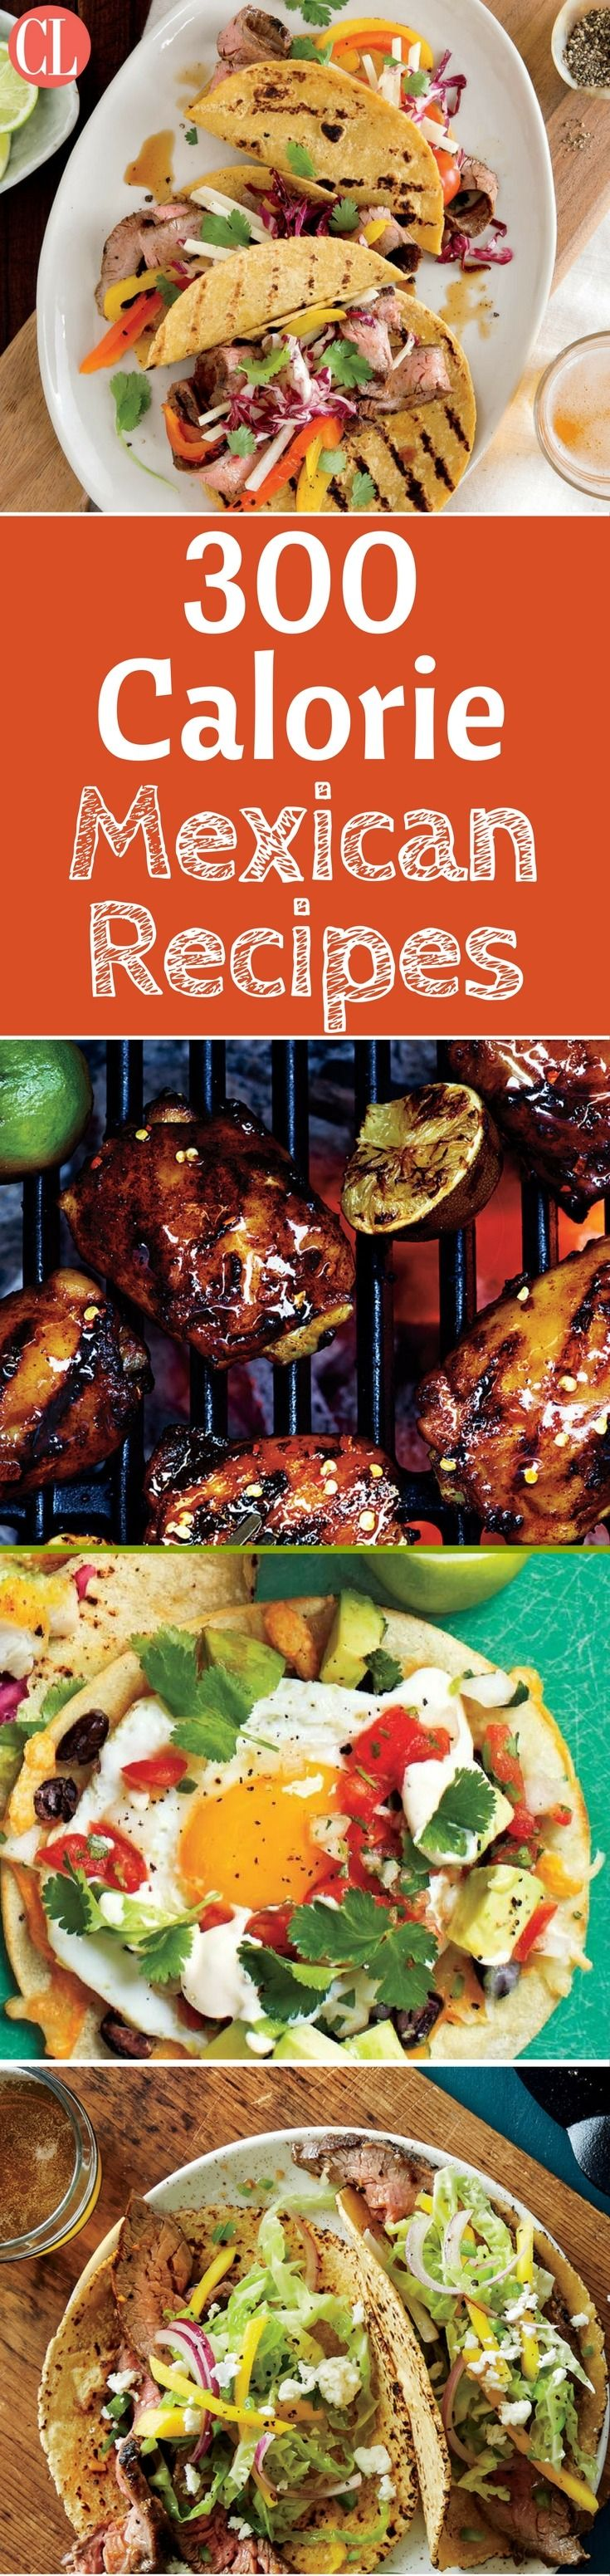 This collection of low-calorie Mexican recipes features all your favorites, including tacos, burritos, and more. We'll get you started with this collection of Mexican-inspired recipes that are short on calories but big on flavor. The only arithmetic you'll be responsible for is subtracting pounds. | Cooking Light